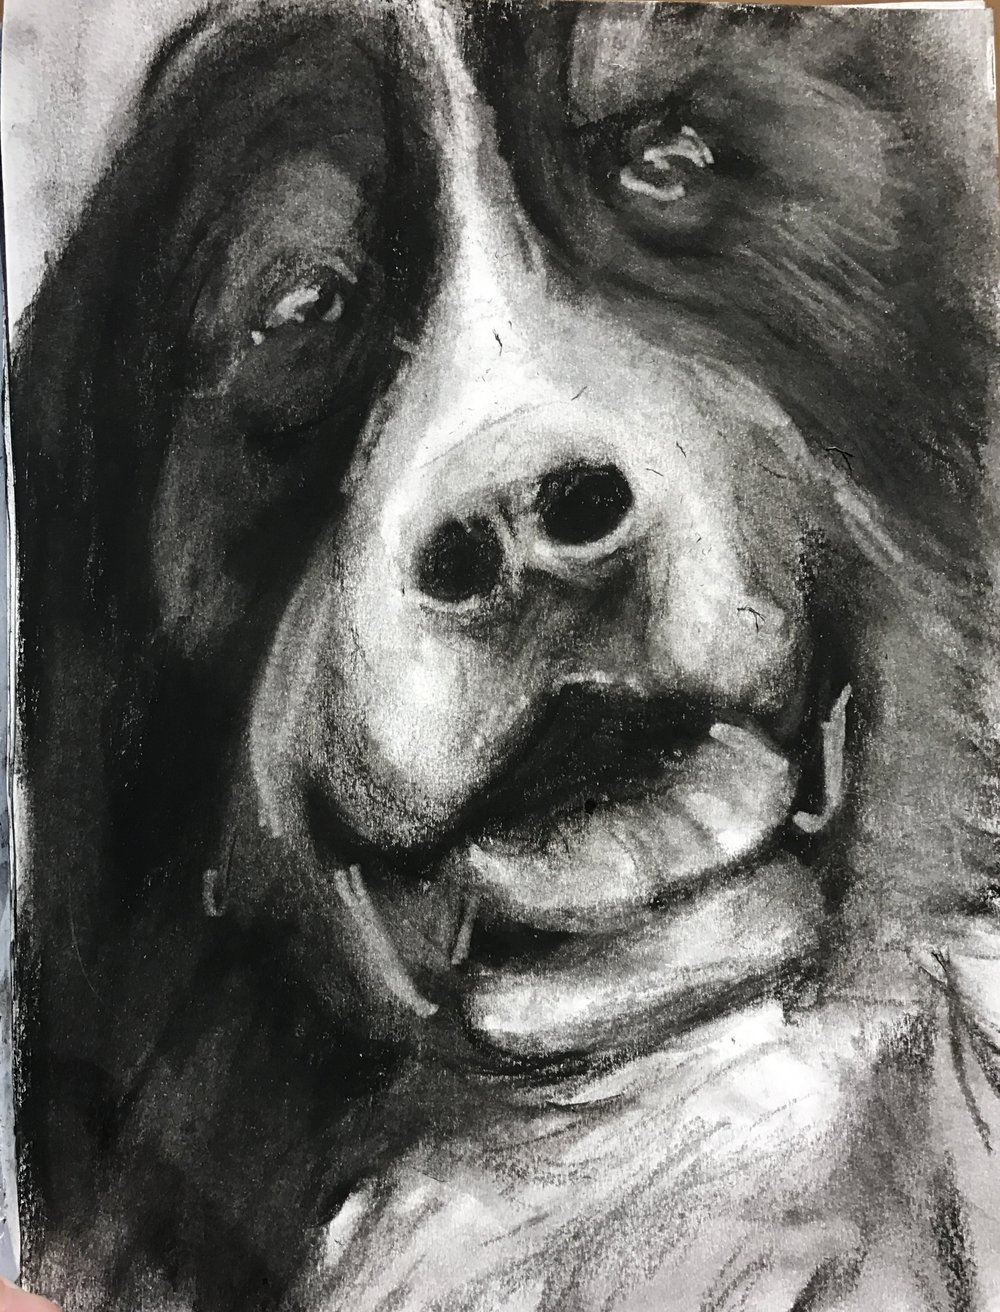 If you run into a Burnese Mountain Dog... you might as well snap a picture and do a sketch, right?